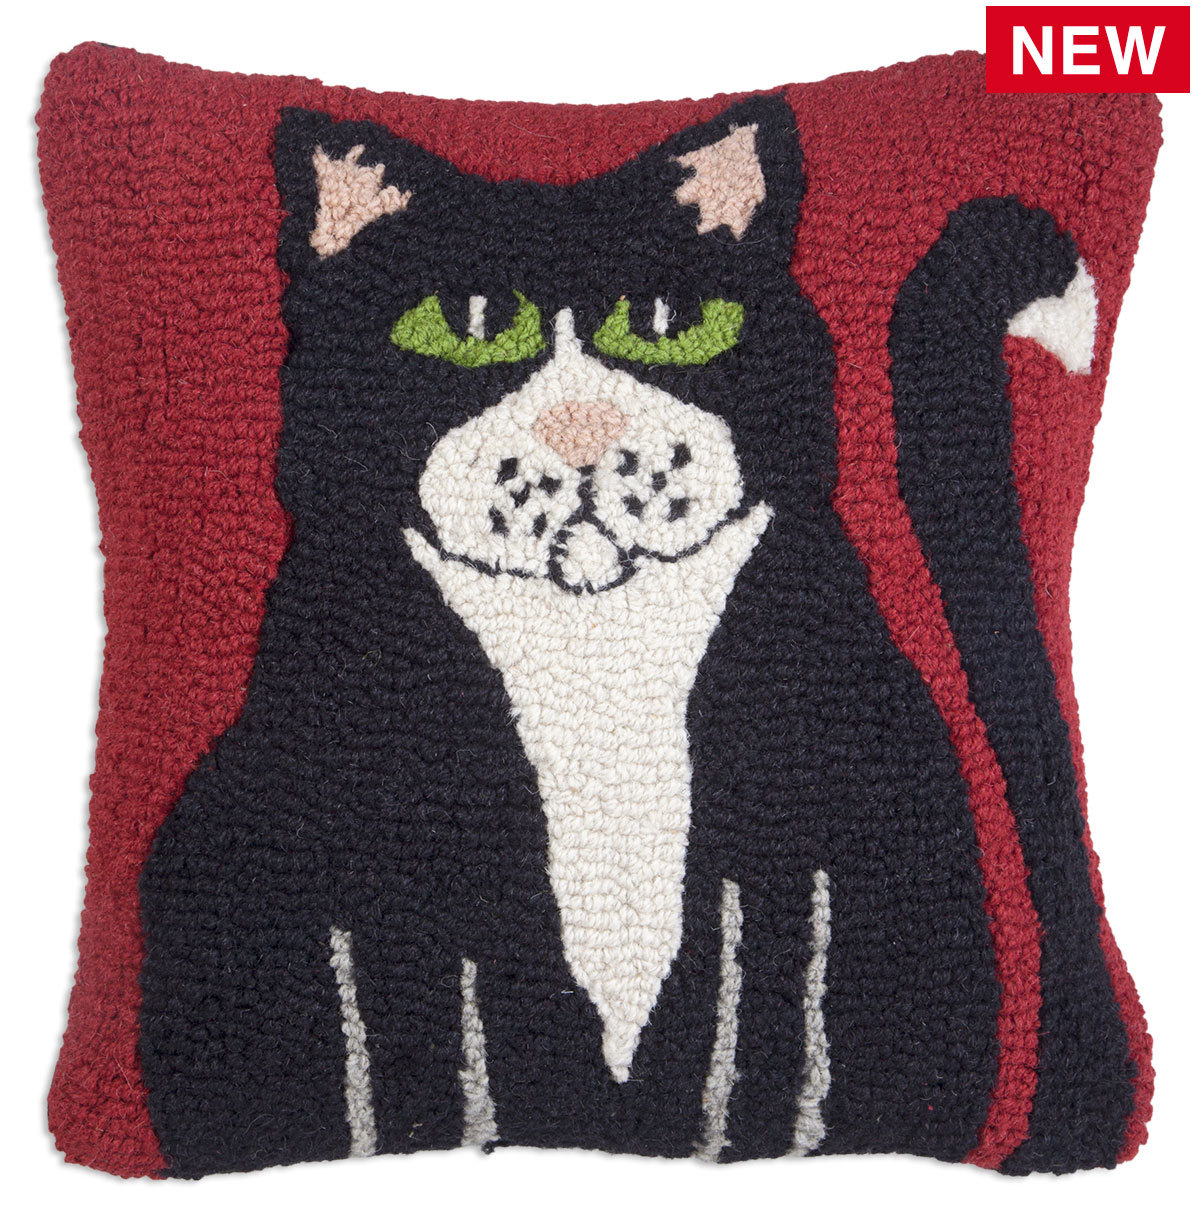 "Black Cat 18"" Wool Hooked Pillow"